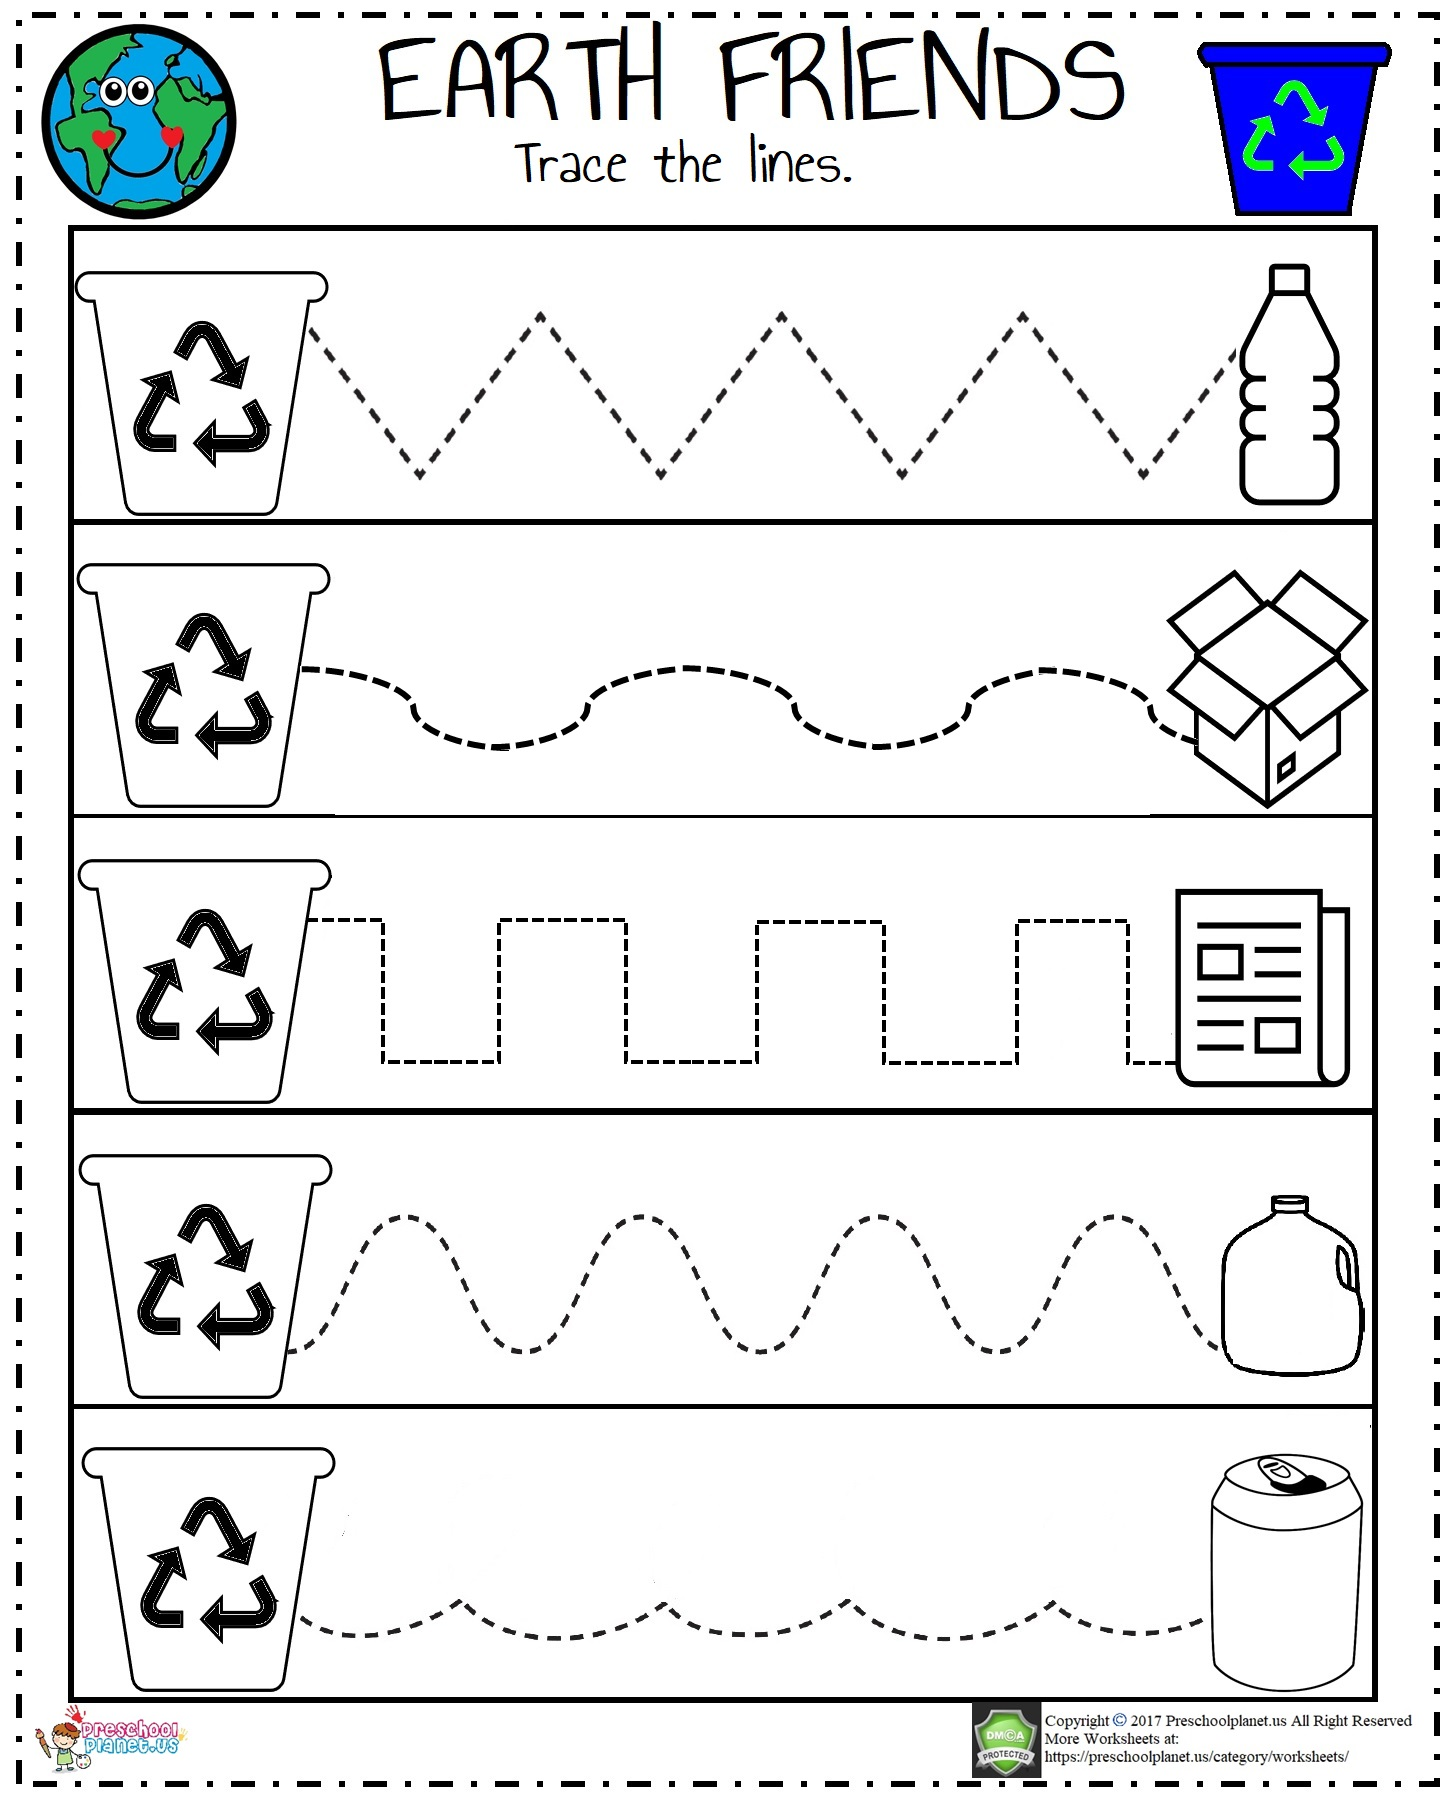 Easy Recycle Worksheet Preschoolplanet